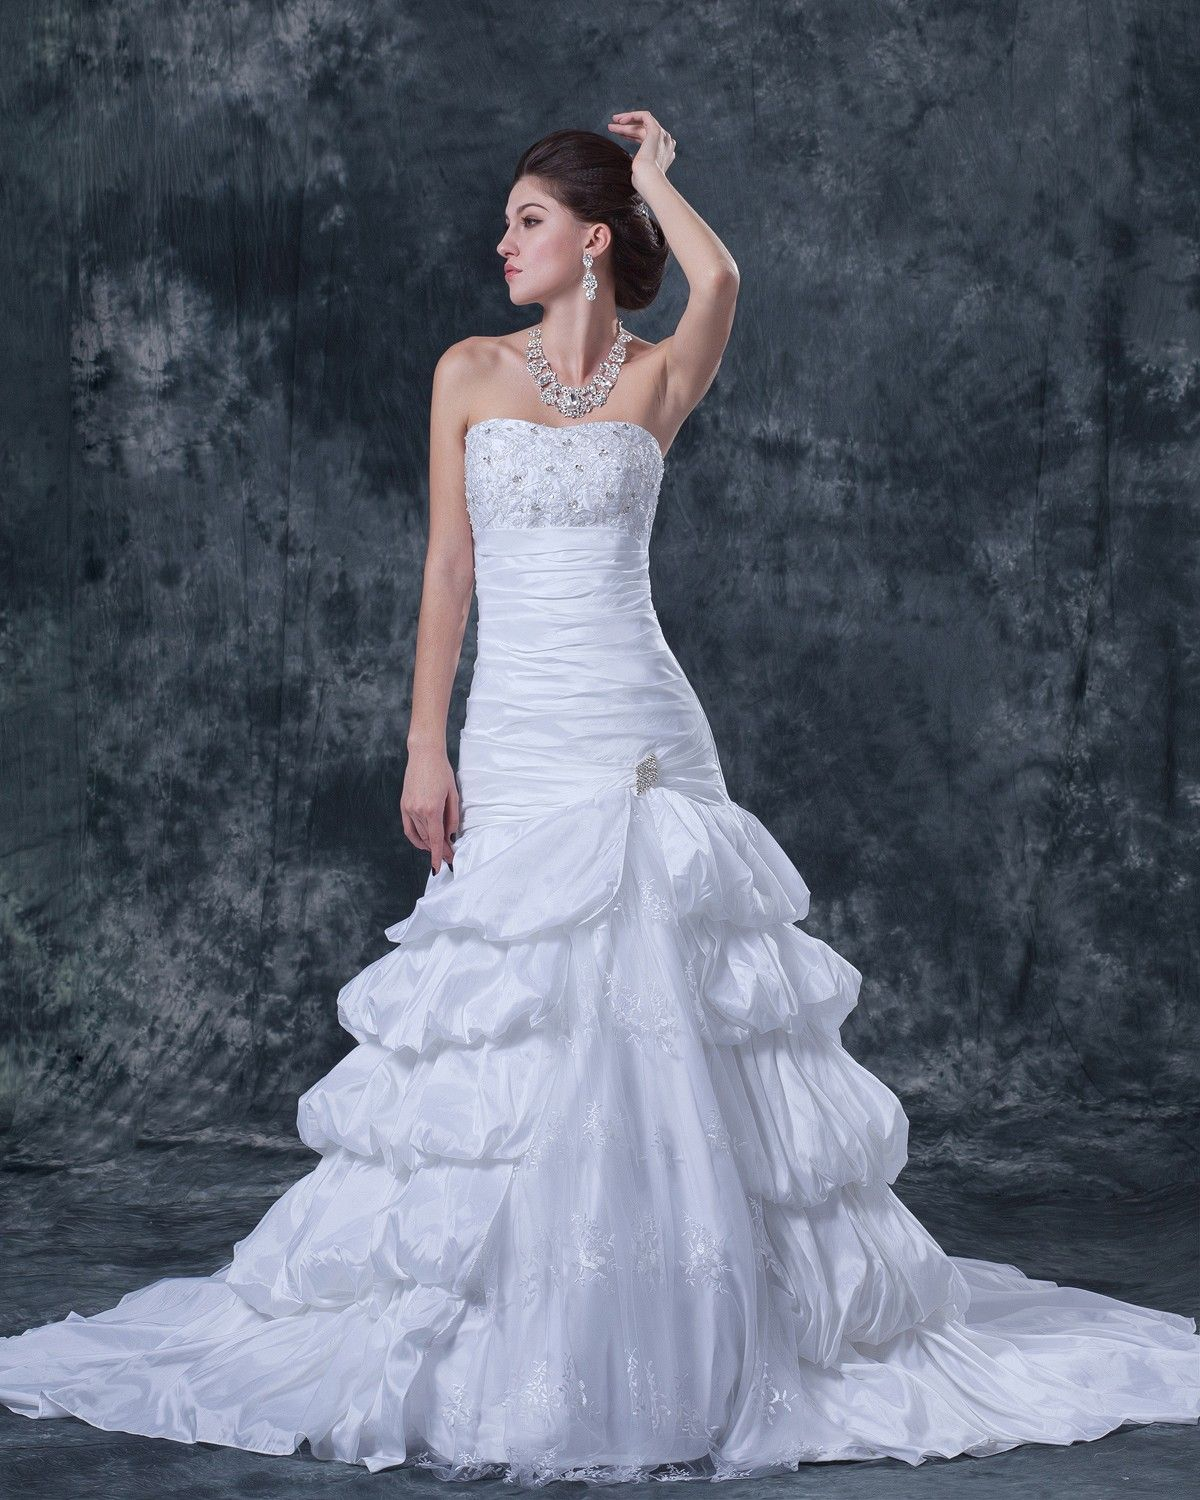 Lace applique ruffles taffeta satin strapless beading cathedral